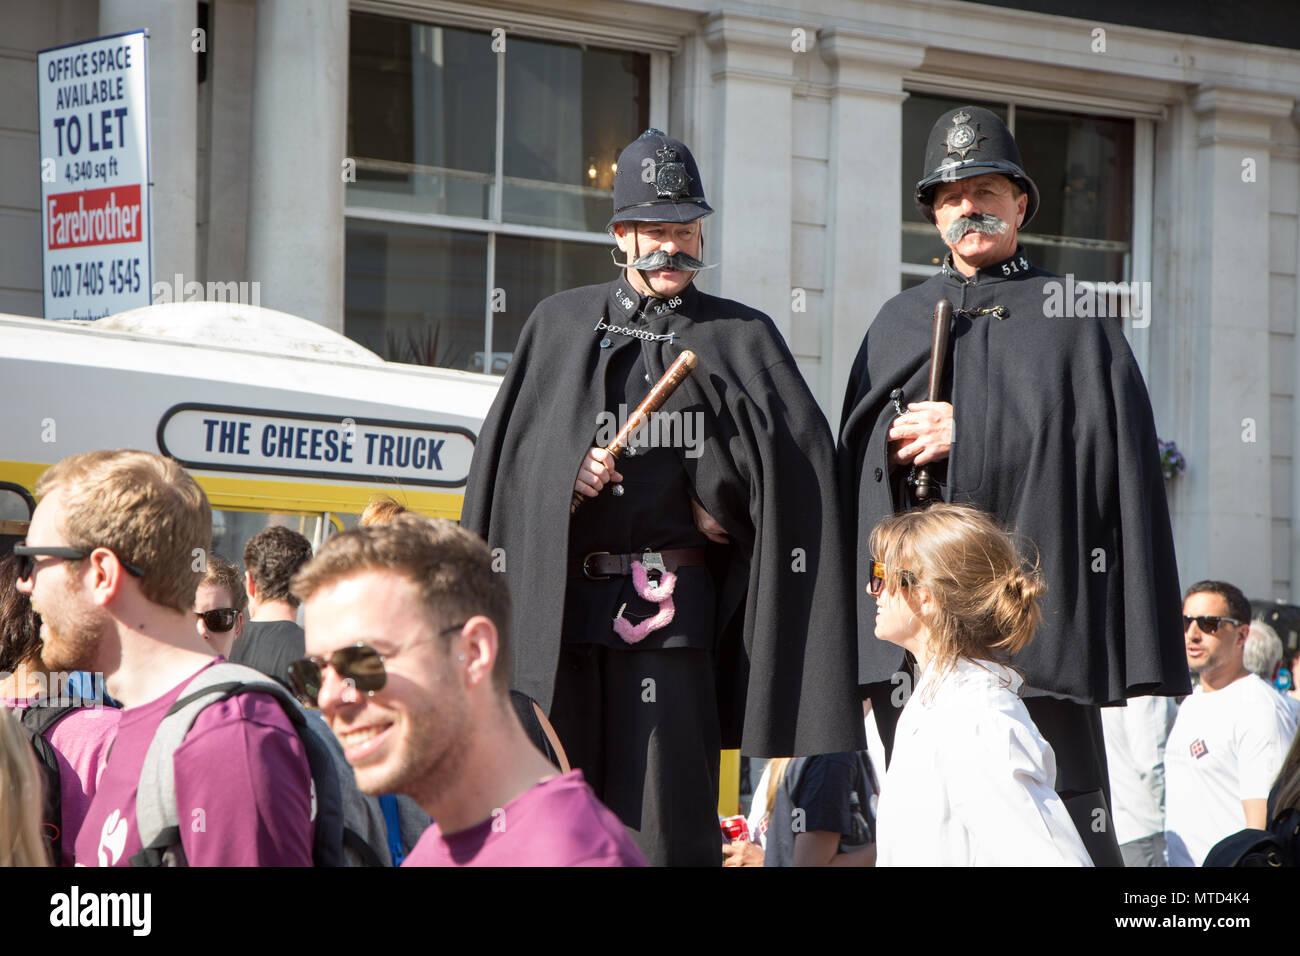 Street entertainers on stilts in Victorian police uniform at the start of London Legal Walk 2018 - Stock Image